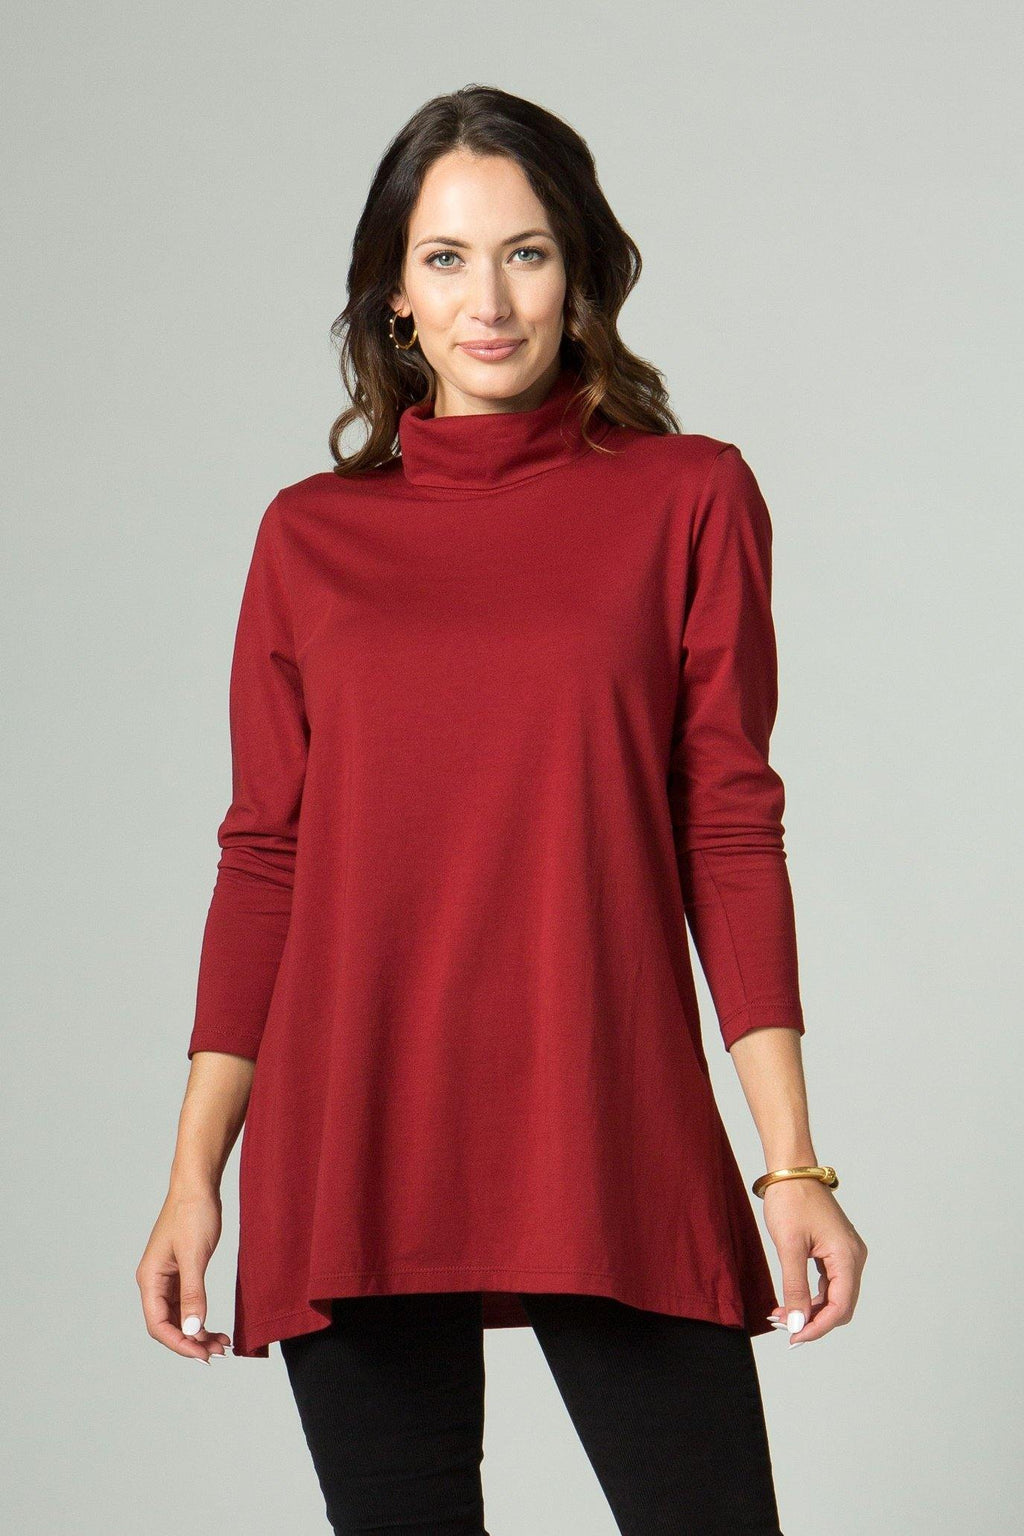 Long Sleeve Turtle Neck with Side Slits